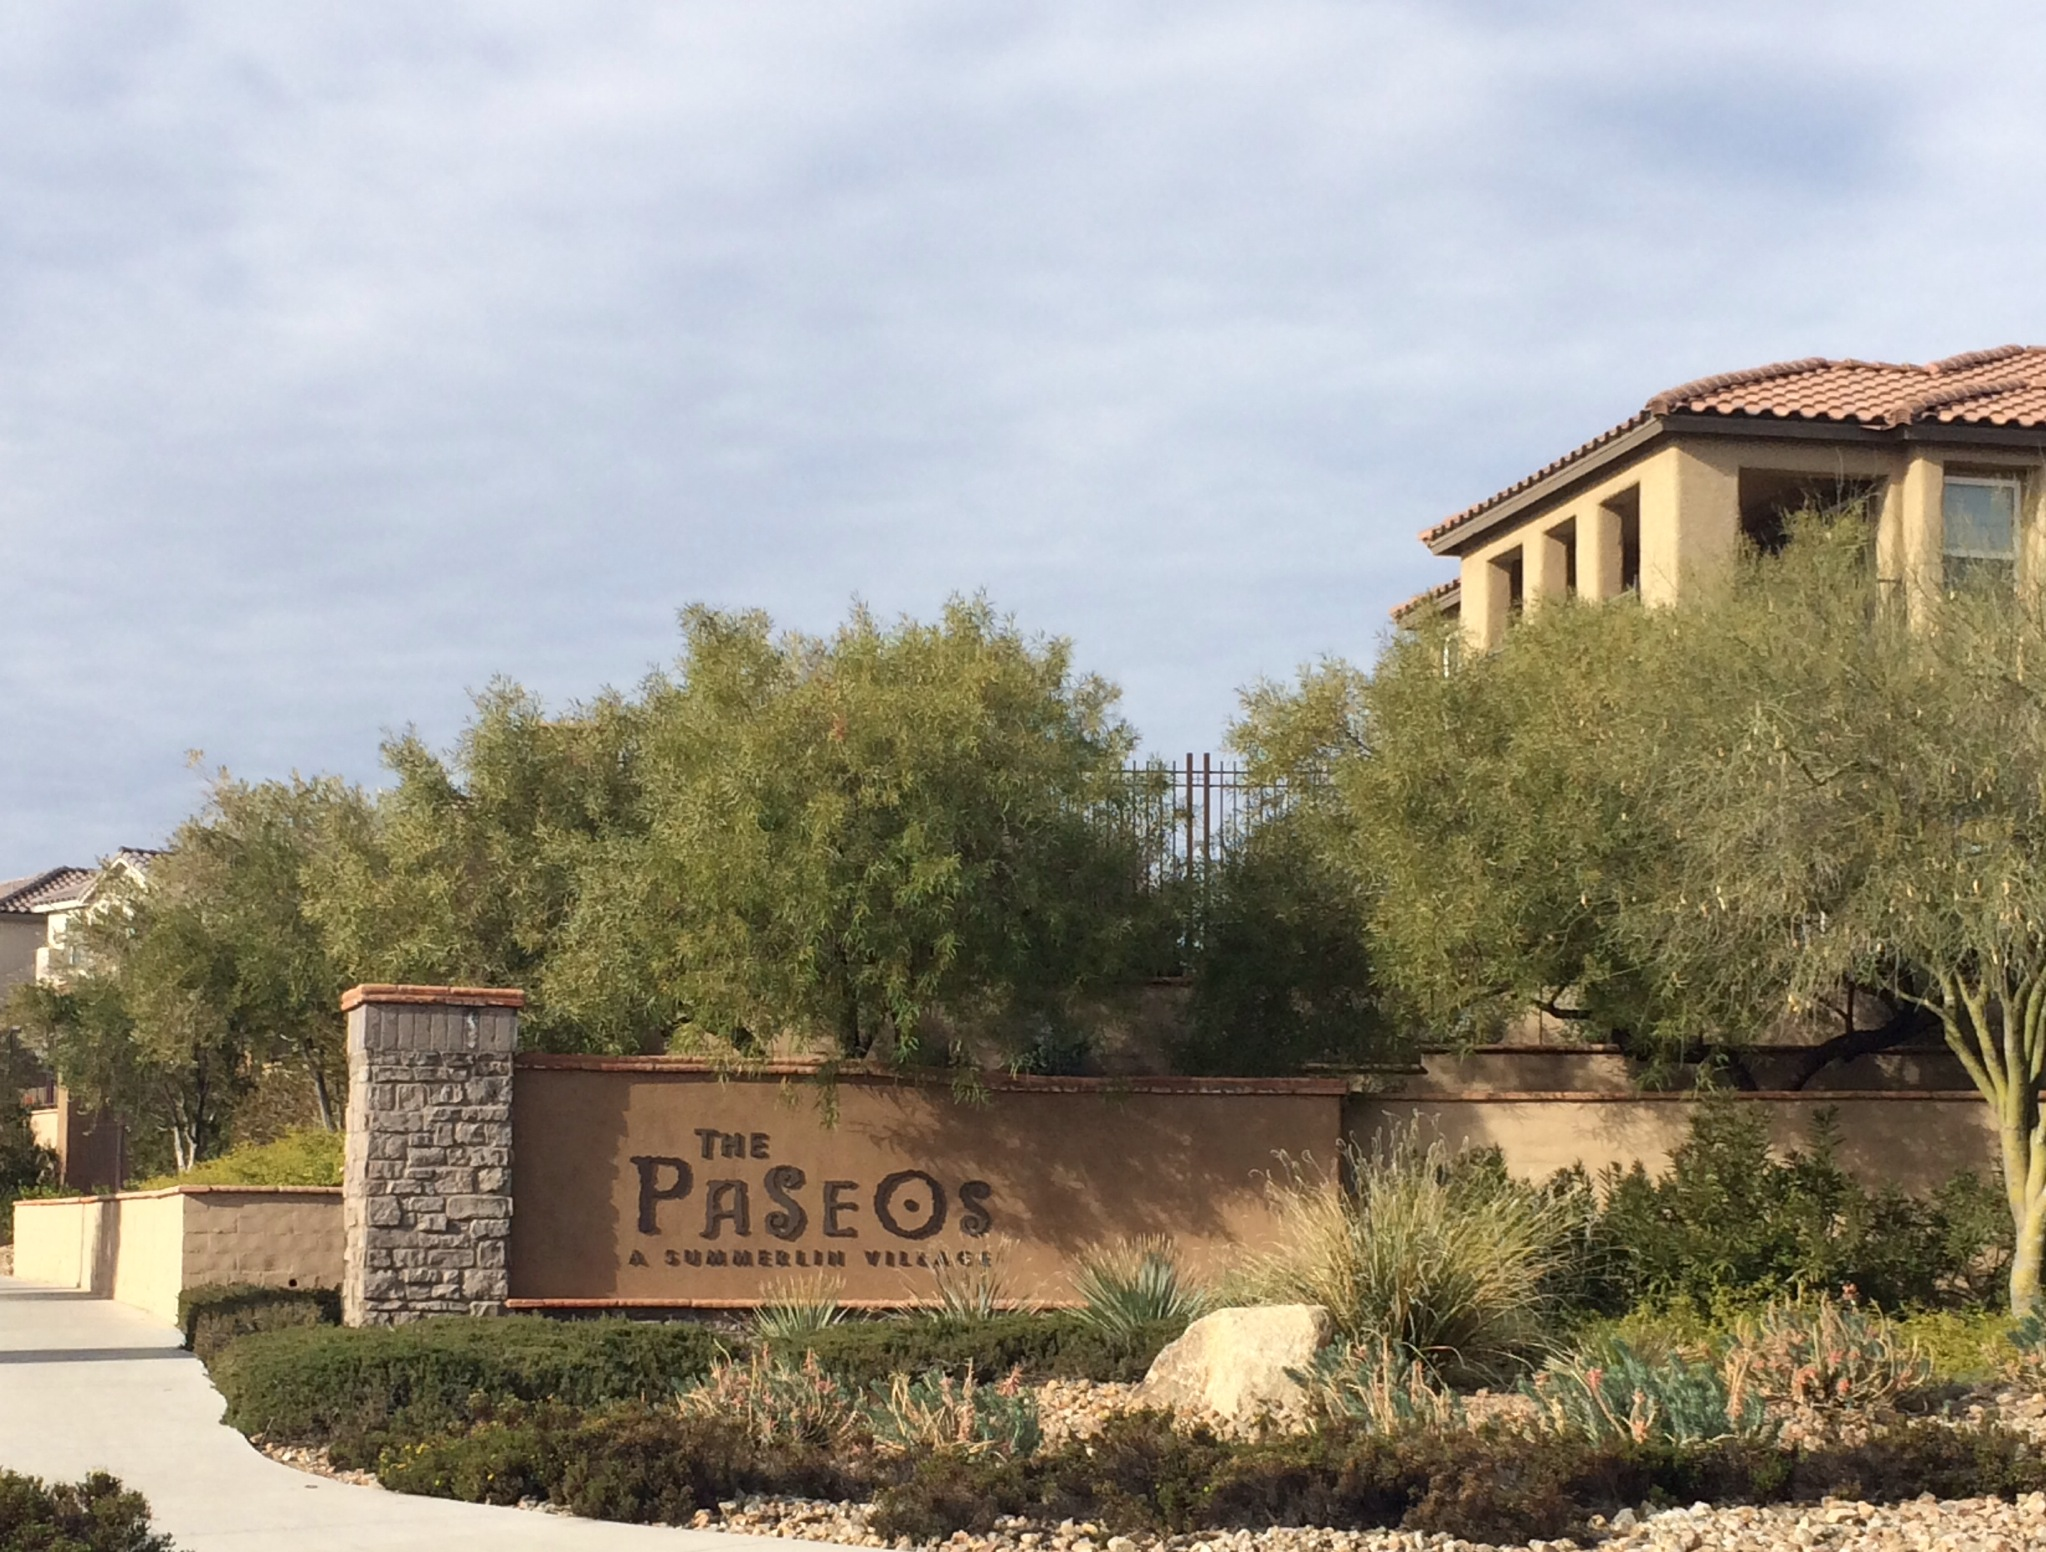 palomar homes for sale summerlin at paseos village